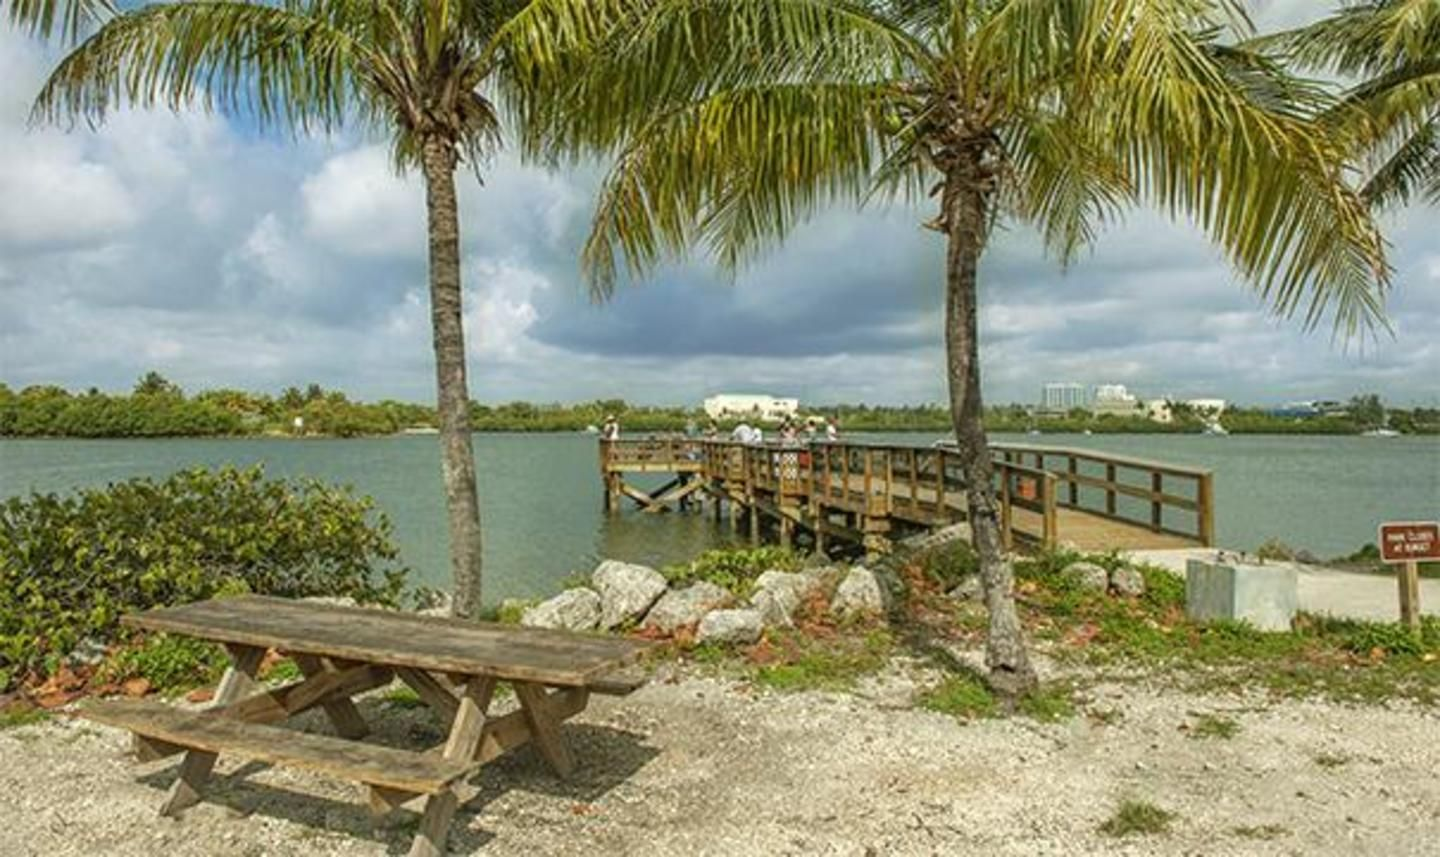 Picnic area and pier